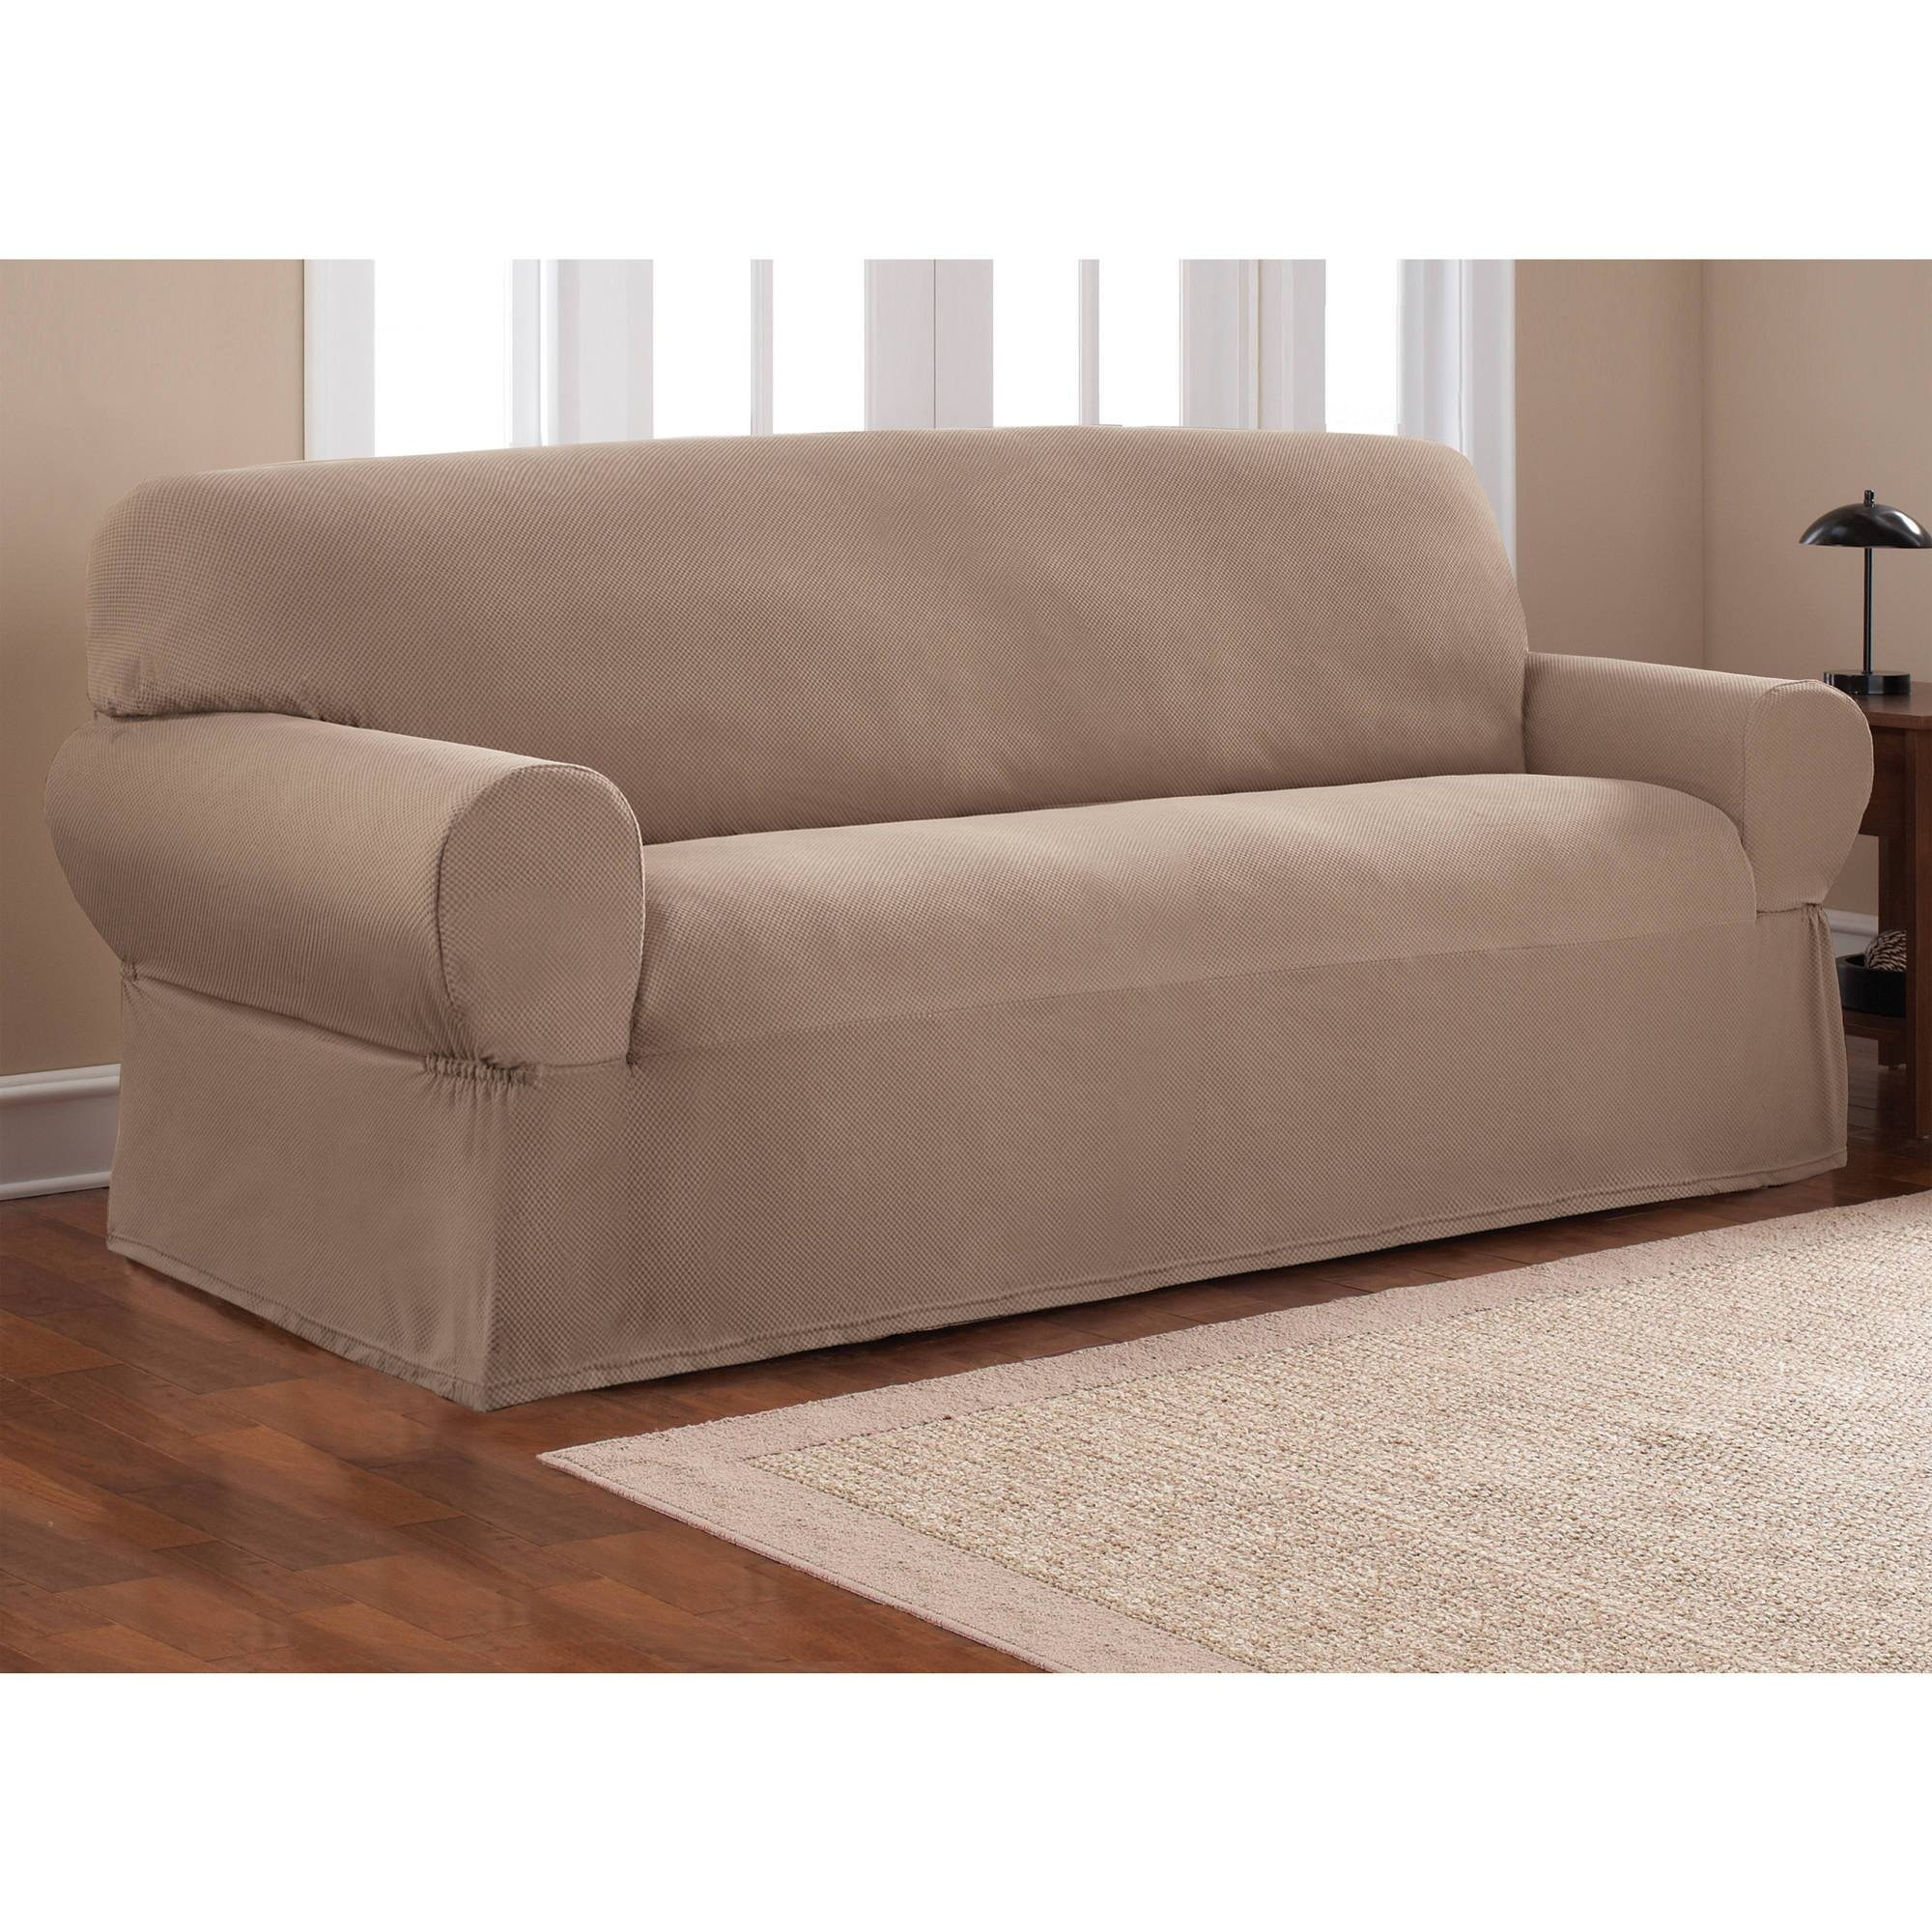 Mainstays 1-Piece Stretch Fabric Sofa Slipcover - Walmart in 3 Piece Sofa Covers (Image 11 of 15)